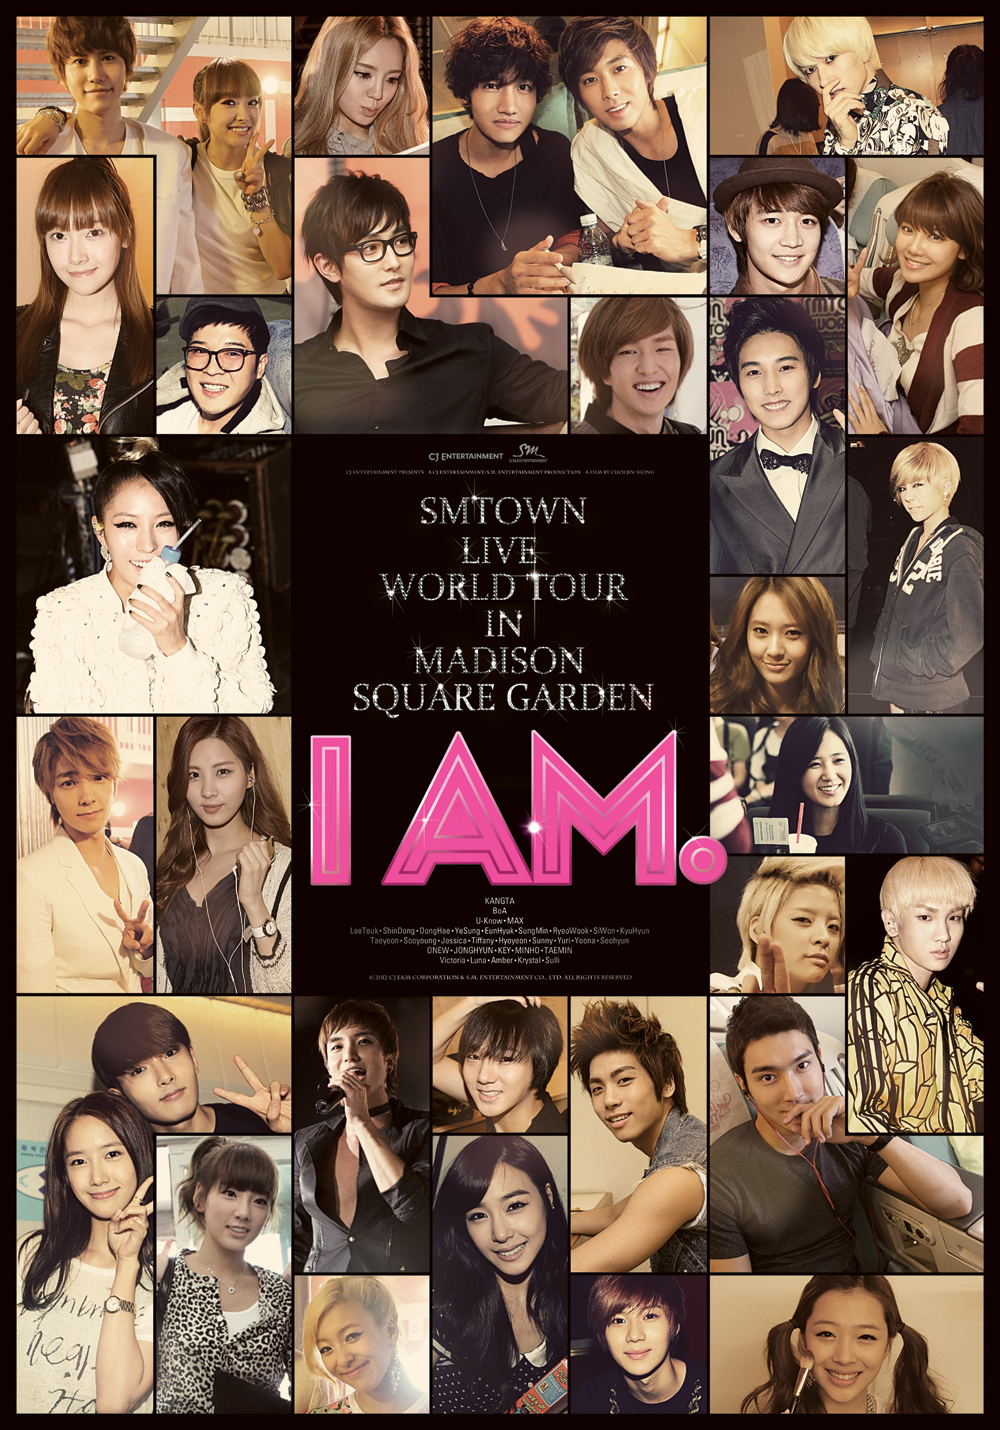 I AM : SMTOWN LIVE WORLD TOUR in Madison Square Garden